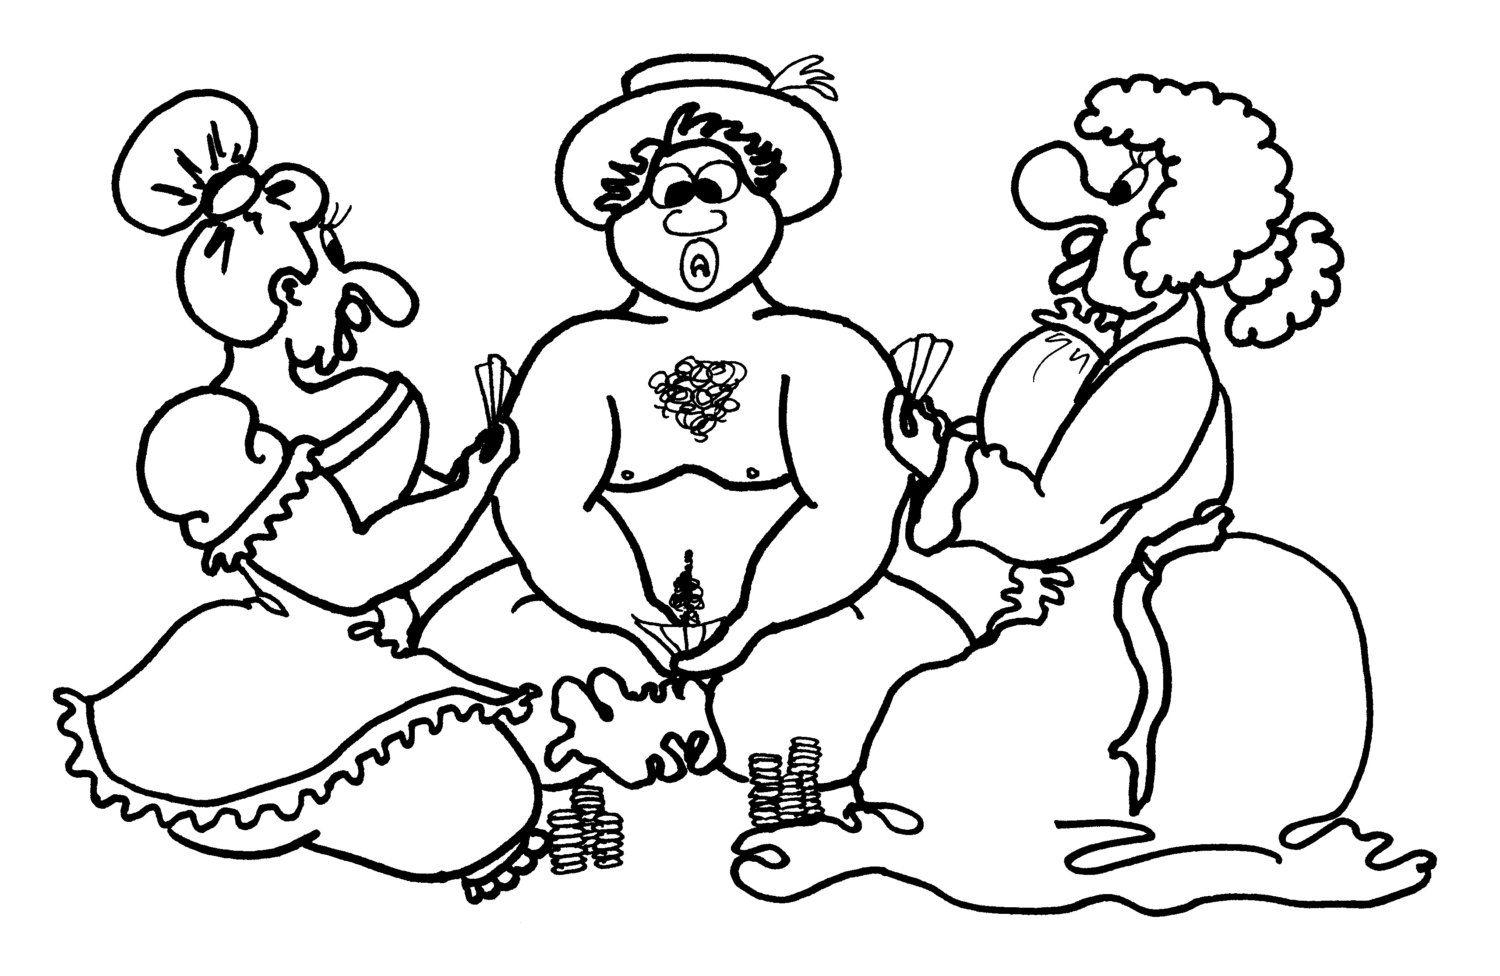 Strip Poker - Coloring Pages for Adults from the Chubby Art Cartoon ...